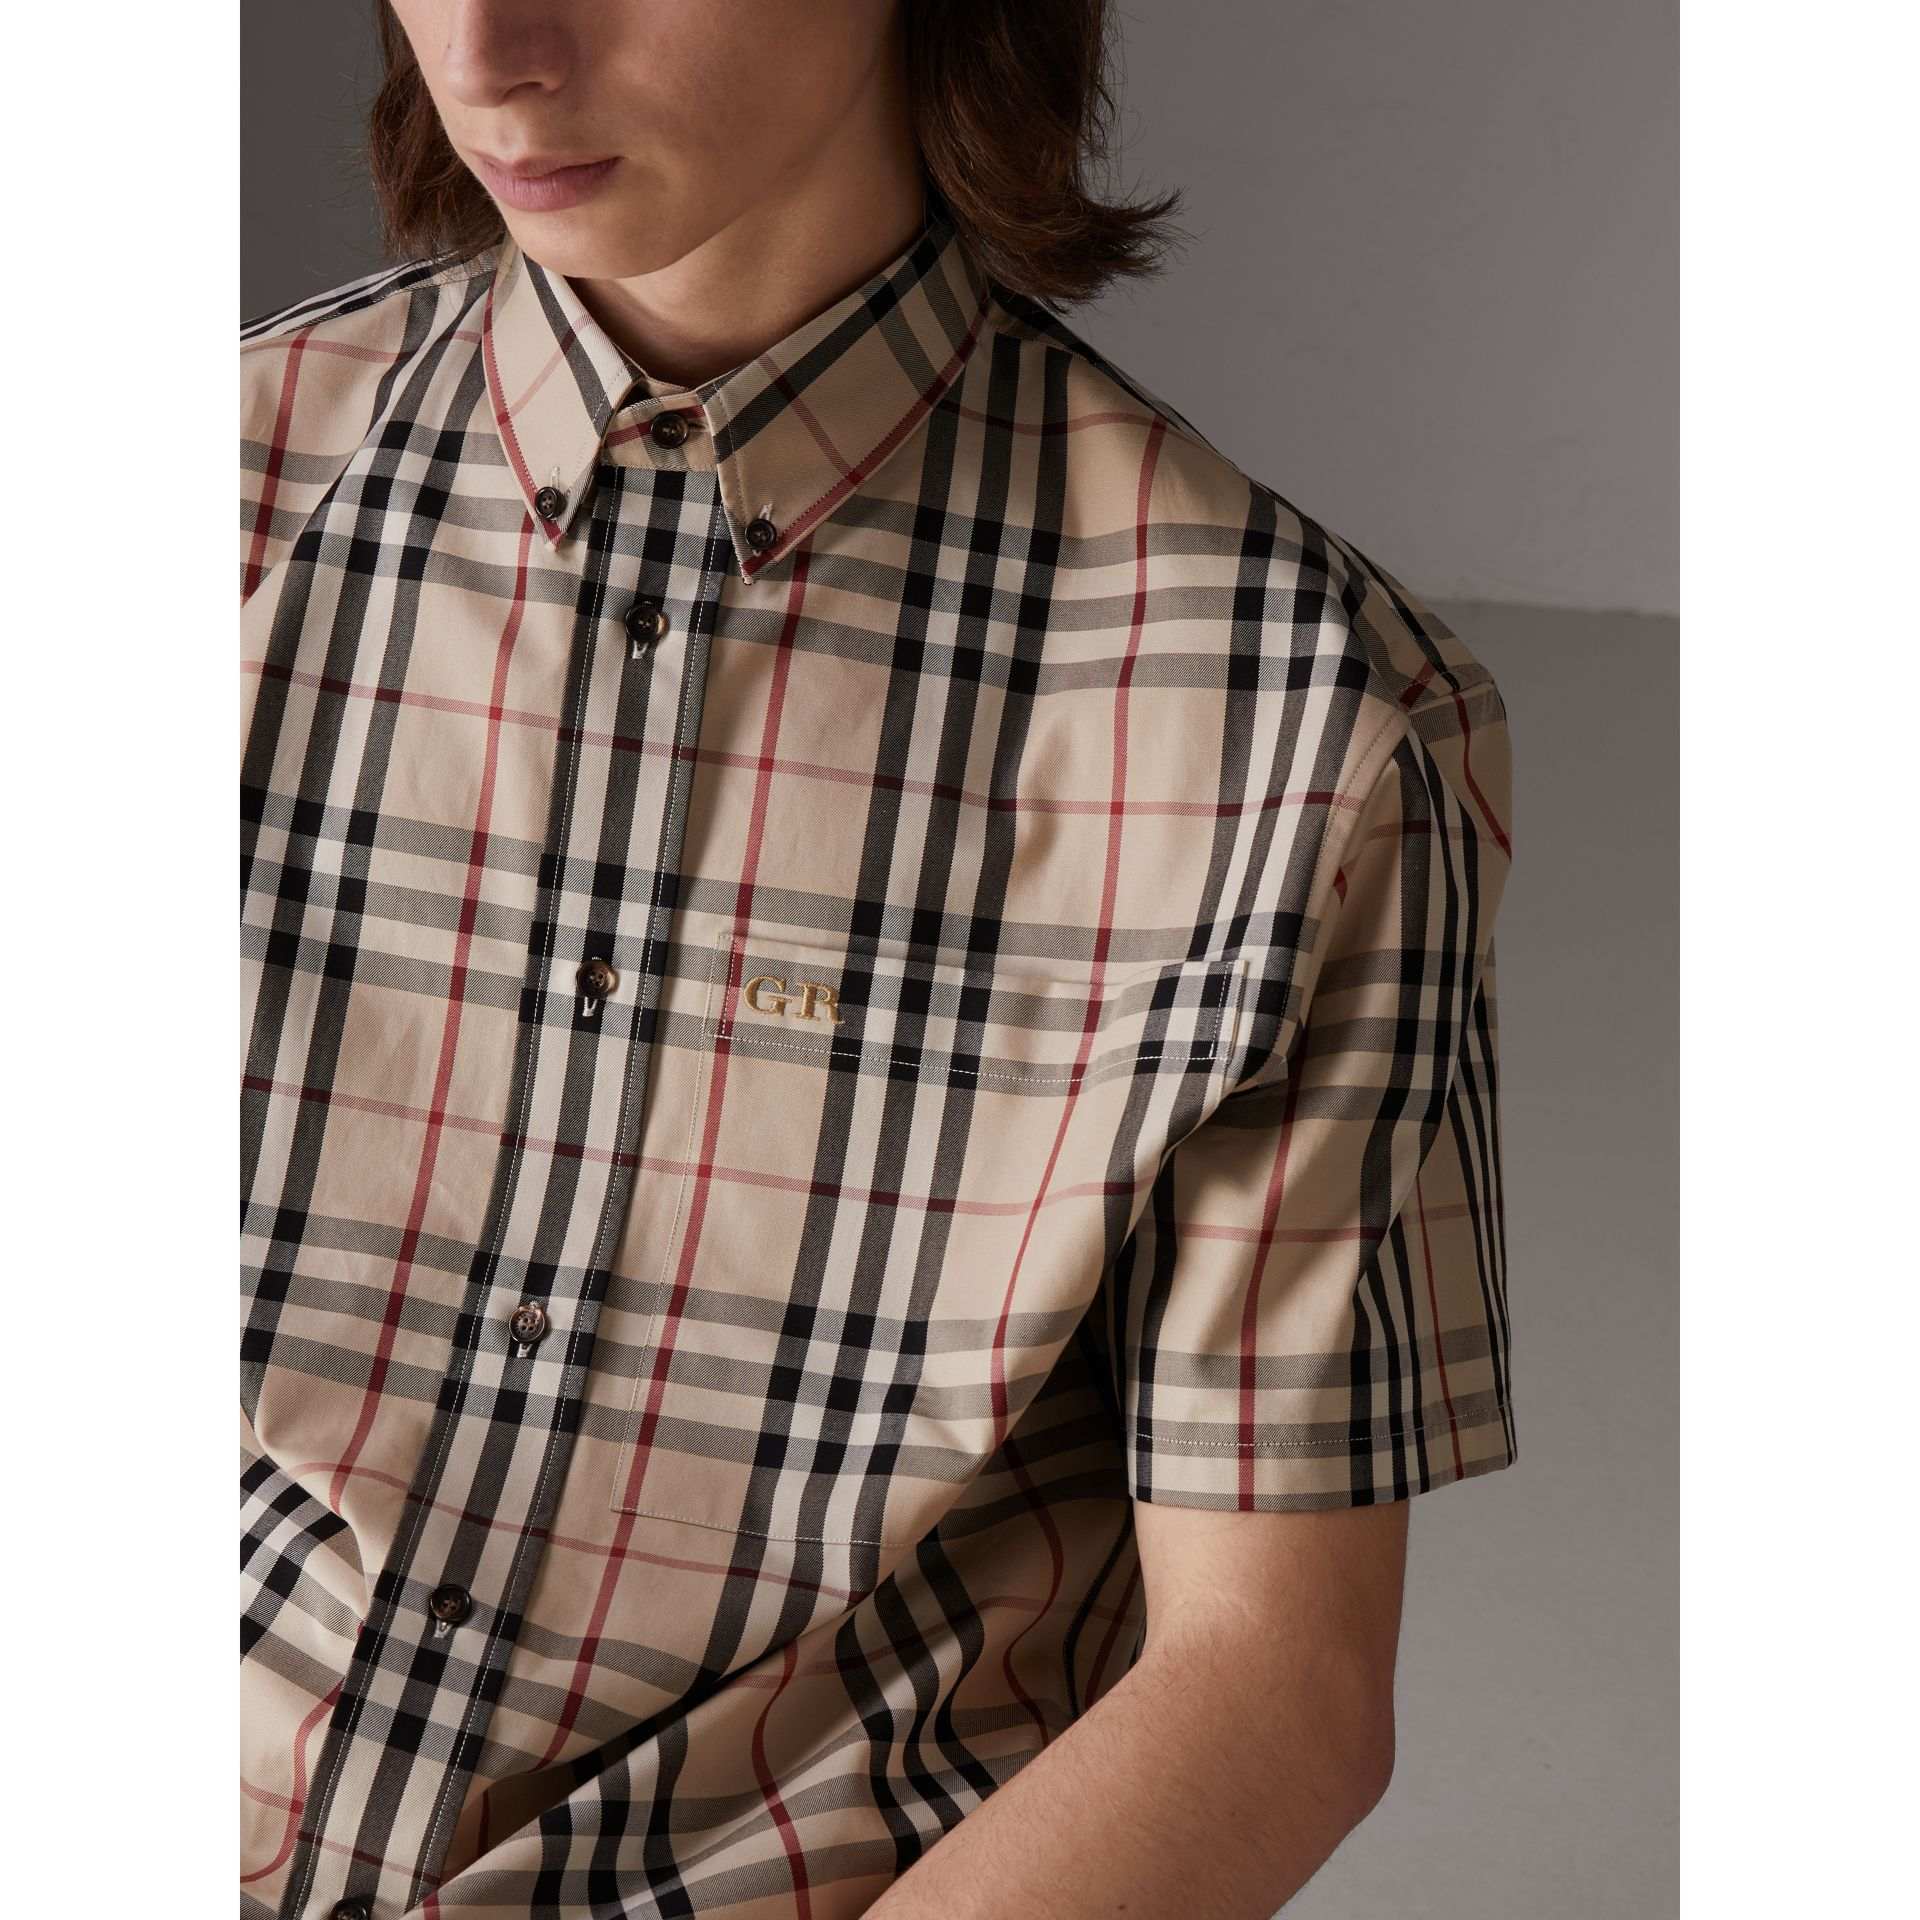 Gosha x Burberry Short-sleeve Check Shirt in Honey | Burberry Singapore - gallery image 1